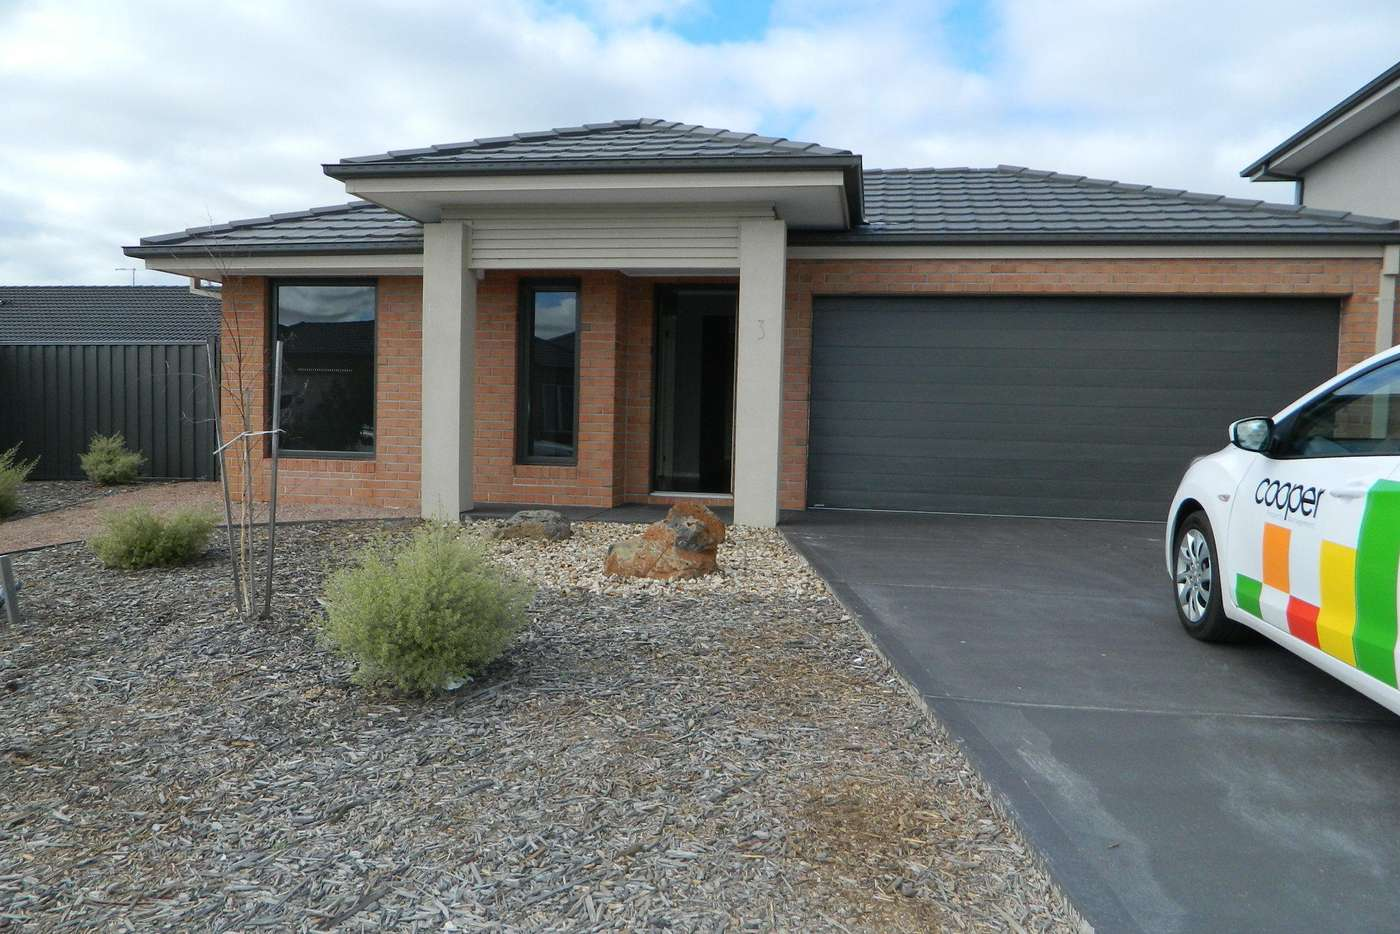 Main view of Homely house listing, 3 Landmark Crescent, Wyndham Vale VIC 3024